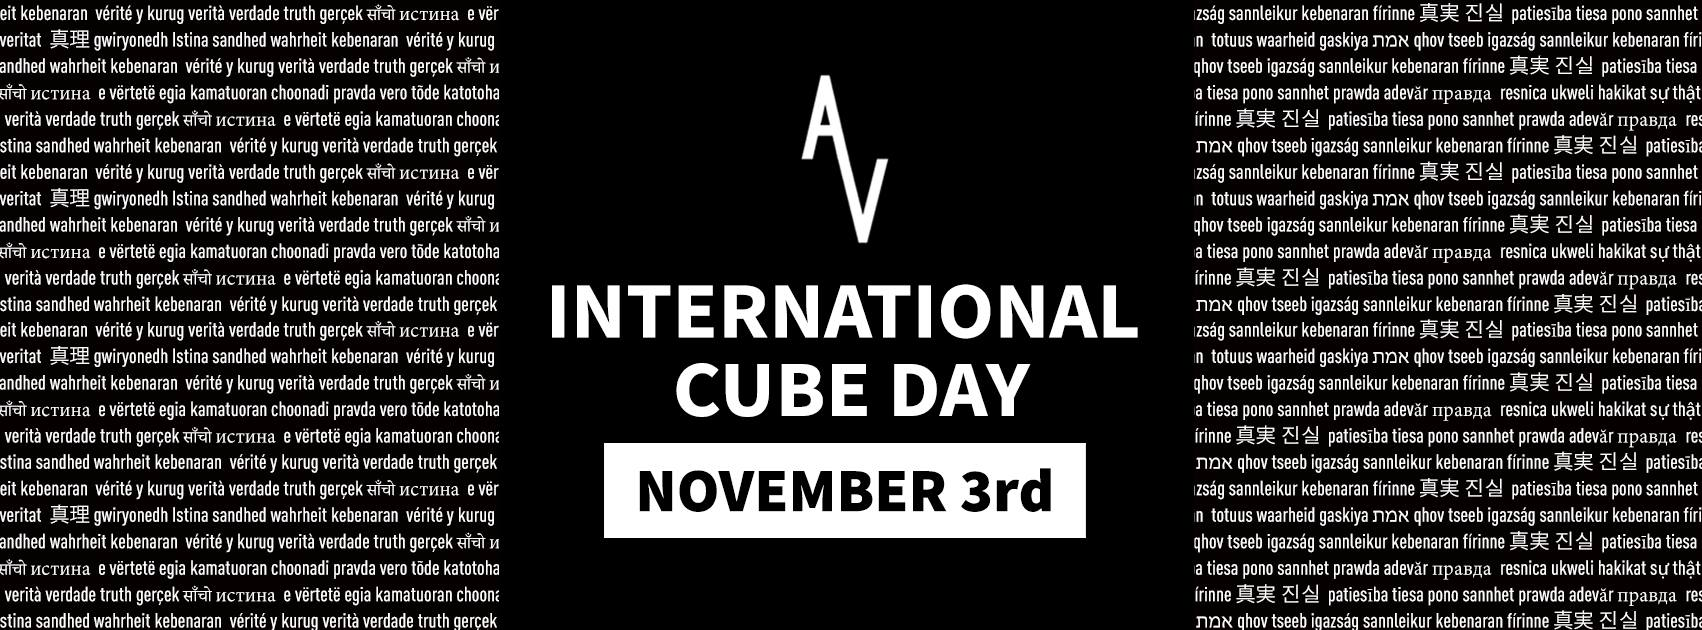 International Cube Day: Syracuse, NY